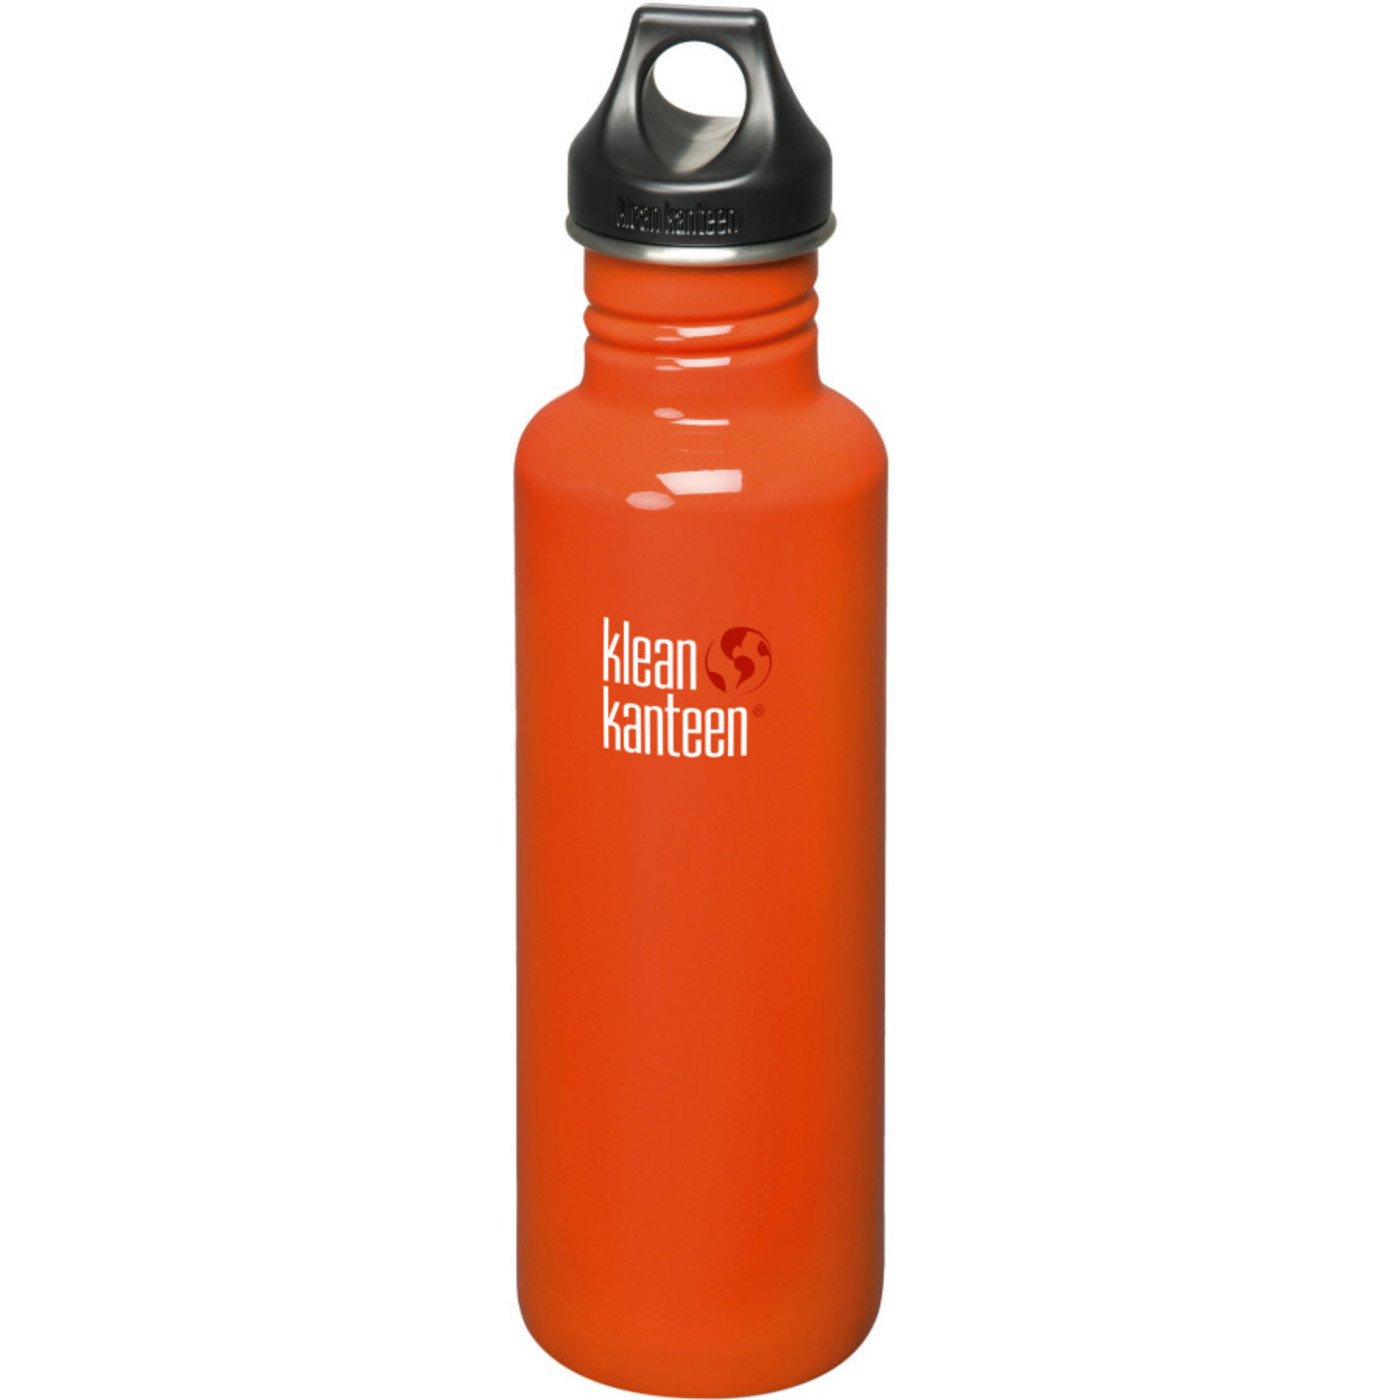 Klean Kanteen 27oz Classic Loop Cap Water Bottle